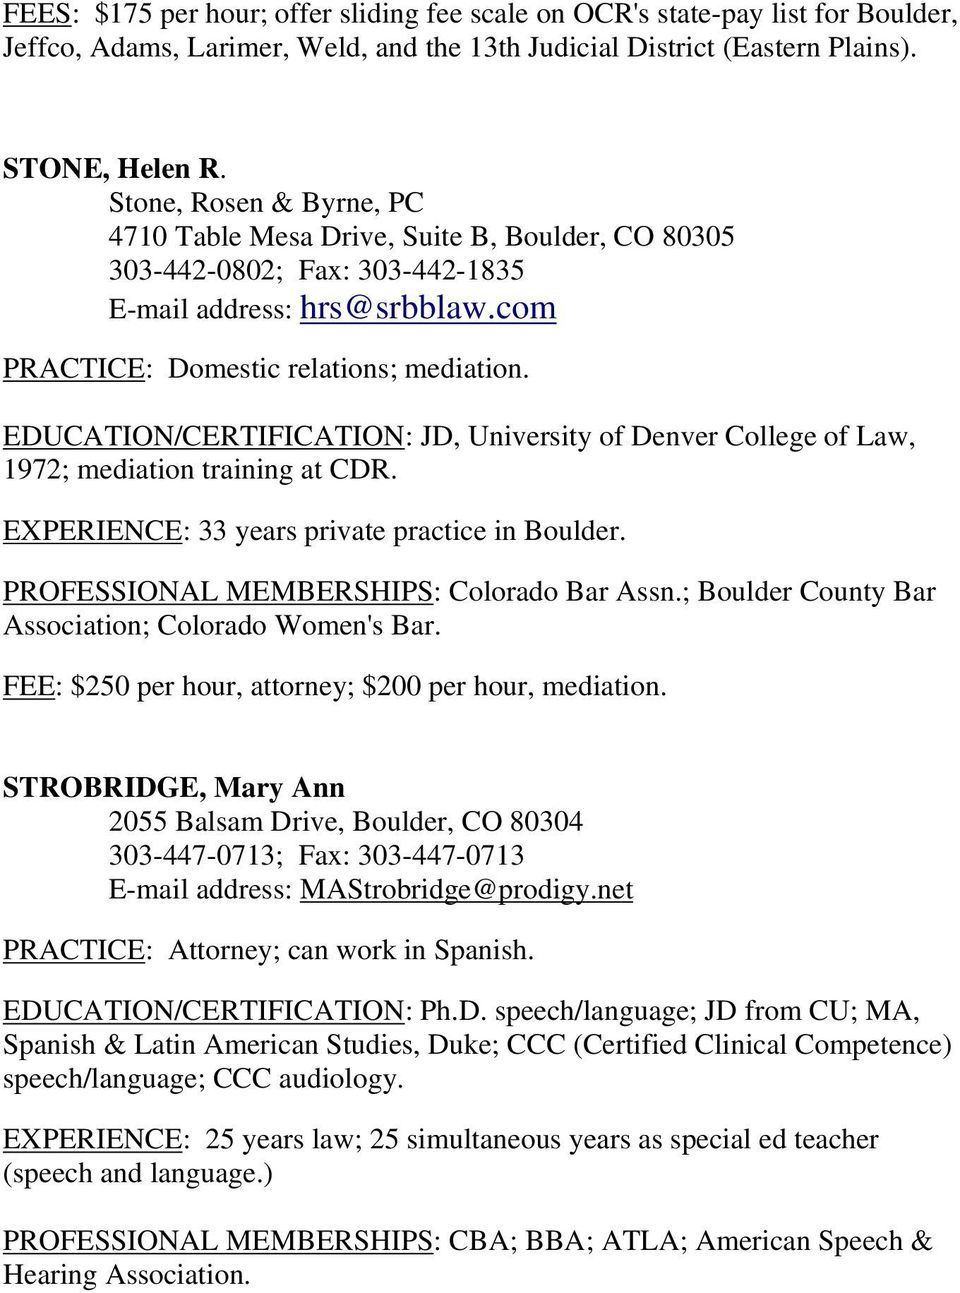 EDUCATION/CERTIFICATION: JD, University of Denver College of Law, 1972; mediation training at CDR. EXPERIENCE: 33 years private practice in Boulder. PROFESSIONAL MEMBERSHIPS: Colorado Bar Assn.